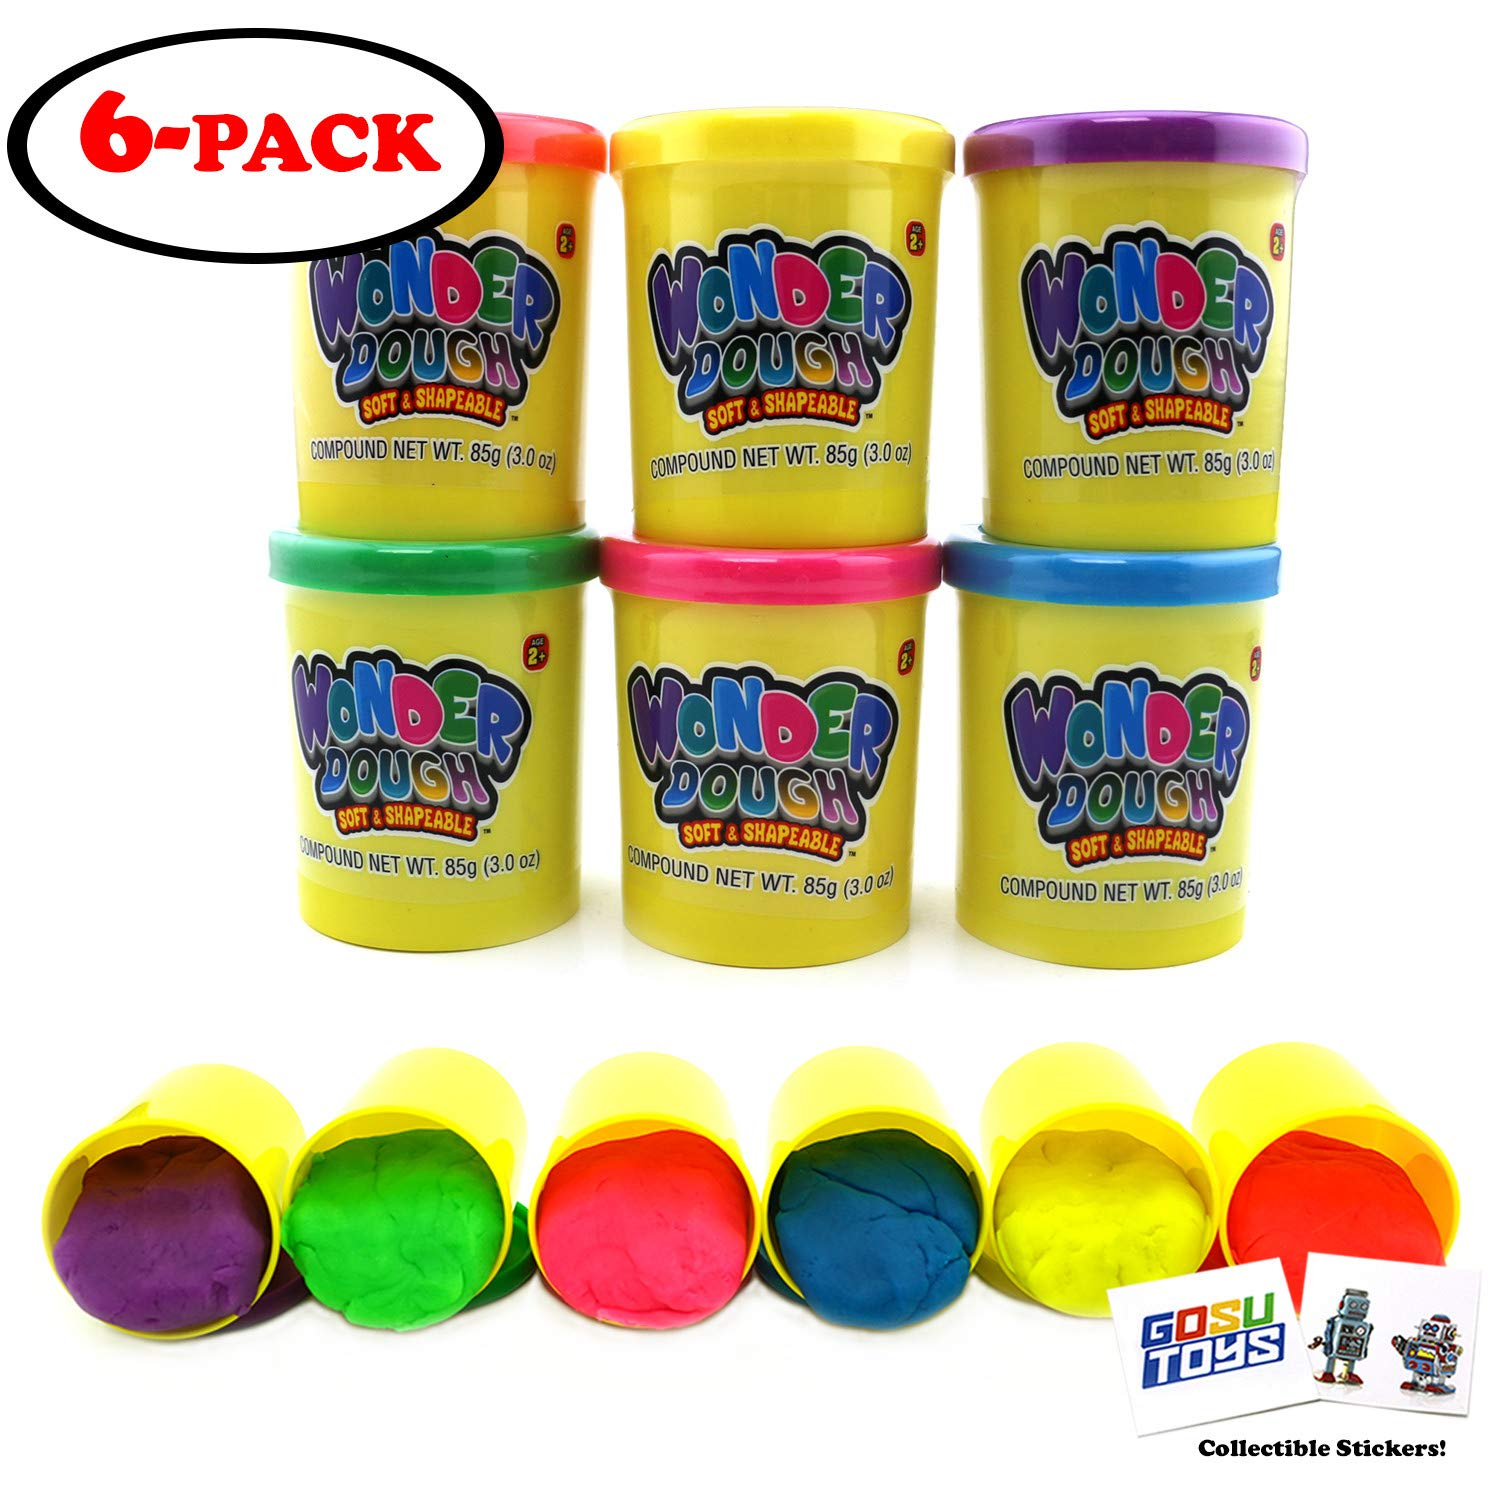 Kids Colorful Arts and Crafts Play Wonder Dough Soft and Shapeable Mega Molding and Sculpting Playset 6 Cans of Creative Fun Non-Toxic with 2 GosuToys Stickers